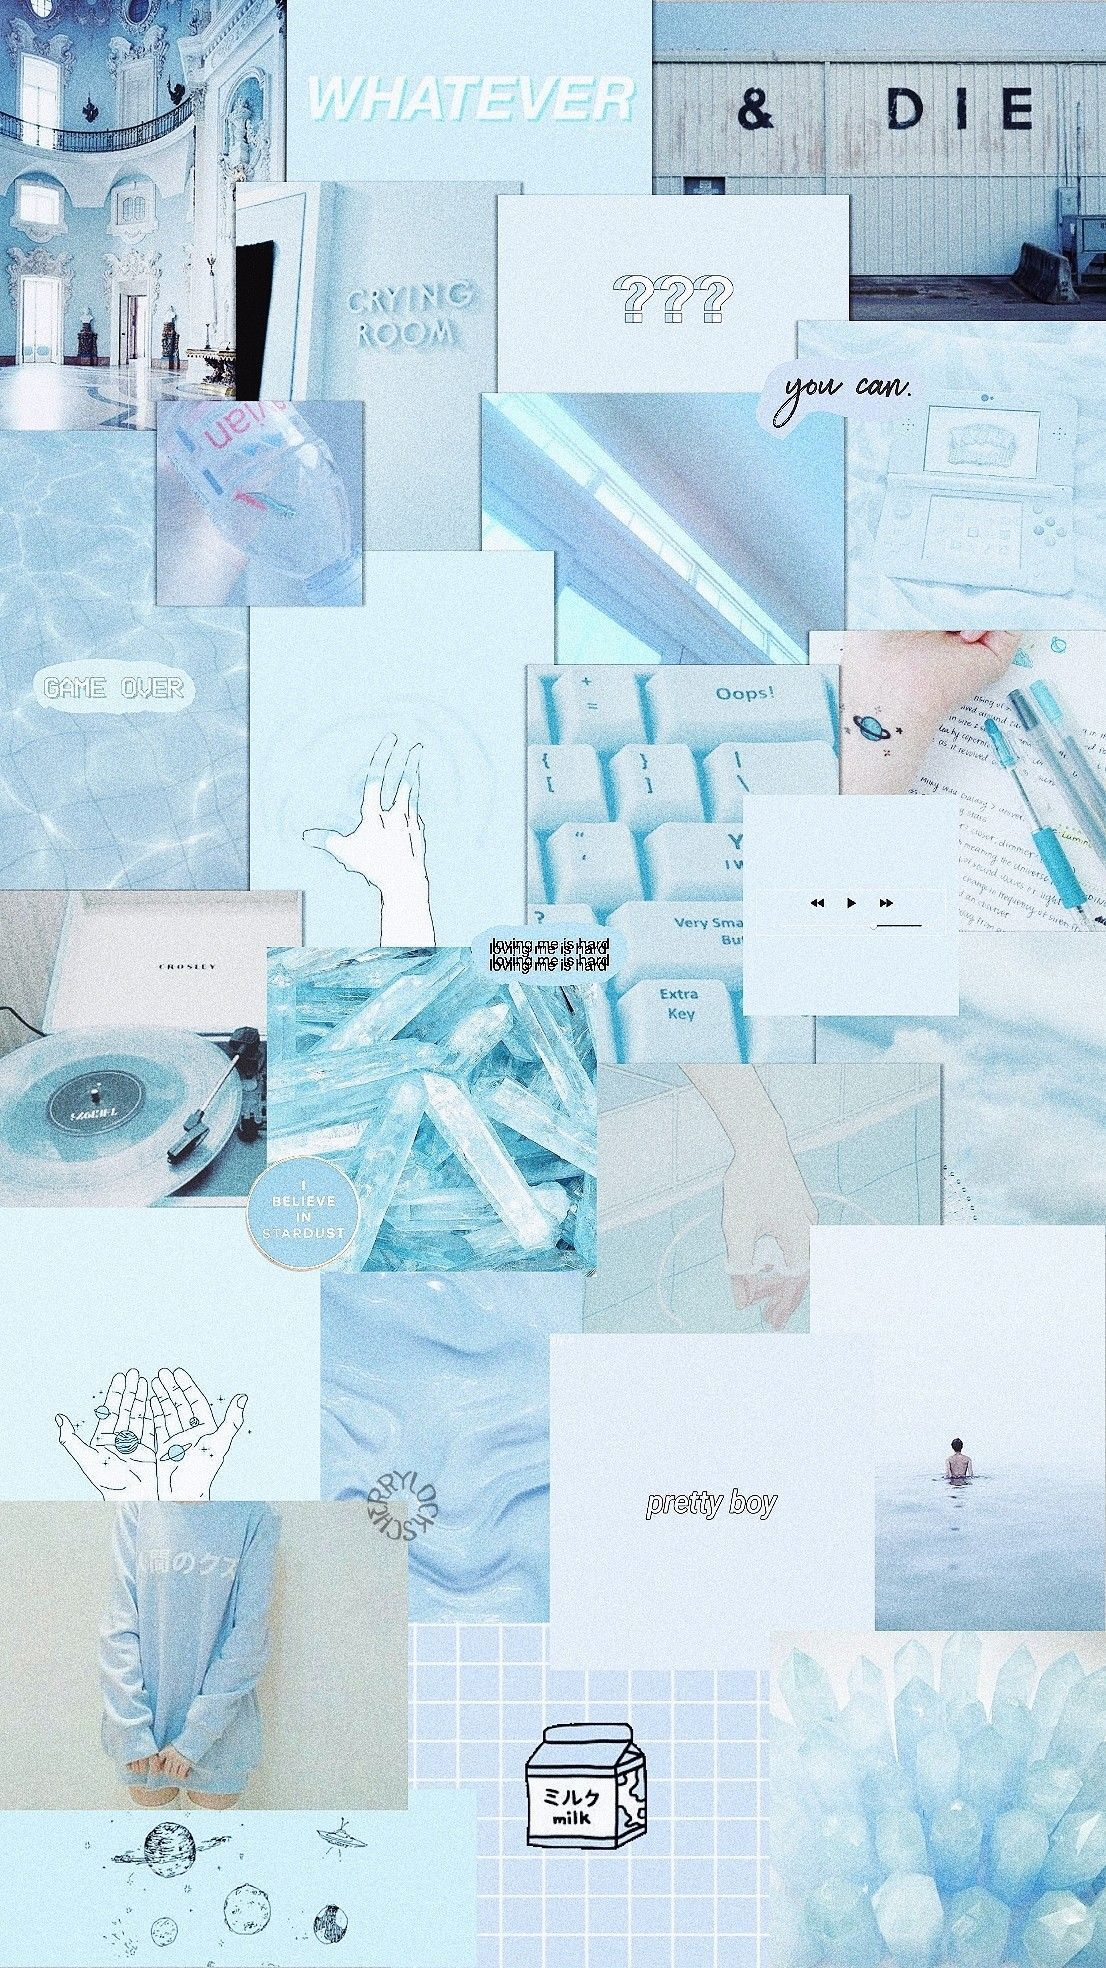 Blue Aesthetic Collage Wallpaper : aesthetic, collage, wallpaper, Aesthetic, Collage, Wallpaper, Pastel,, Iphone,, Iphone